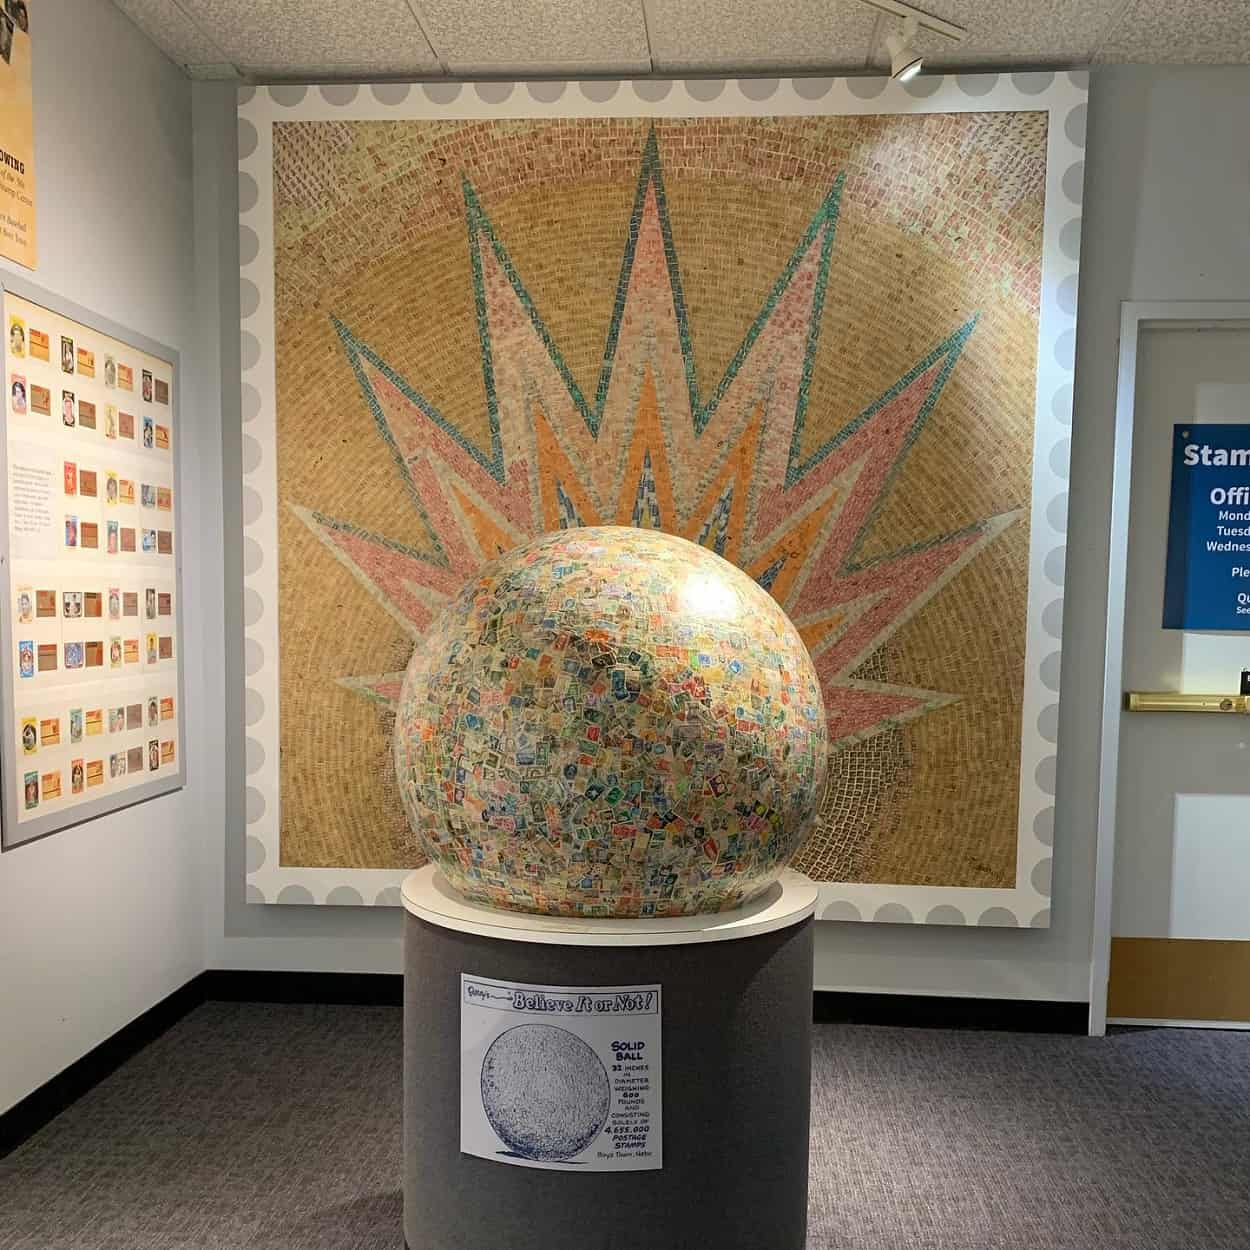 World's Largest Stamp Ball